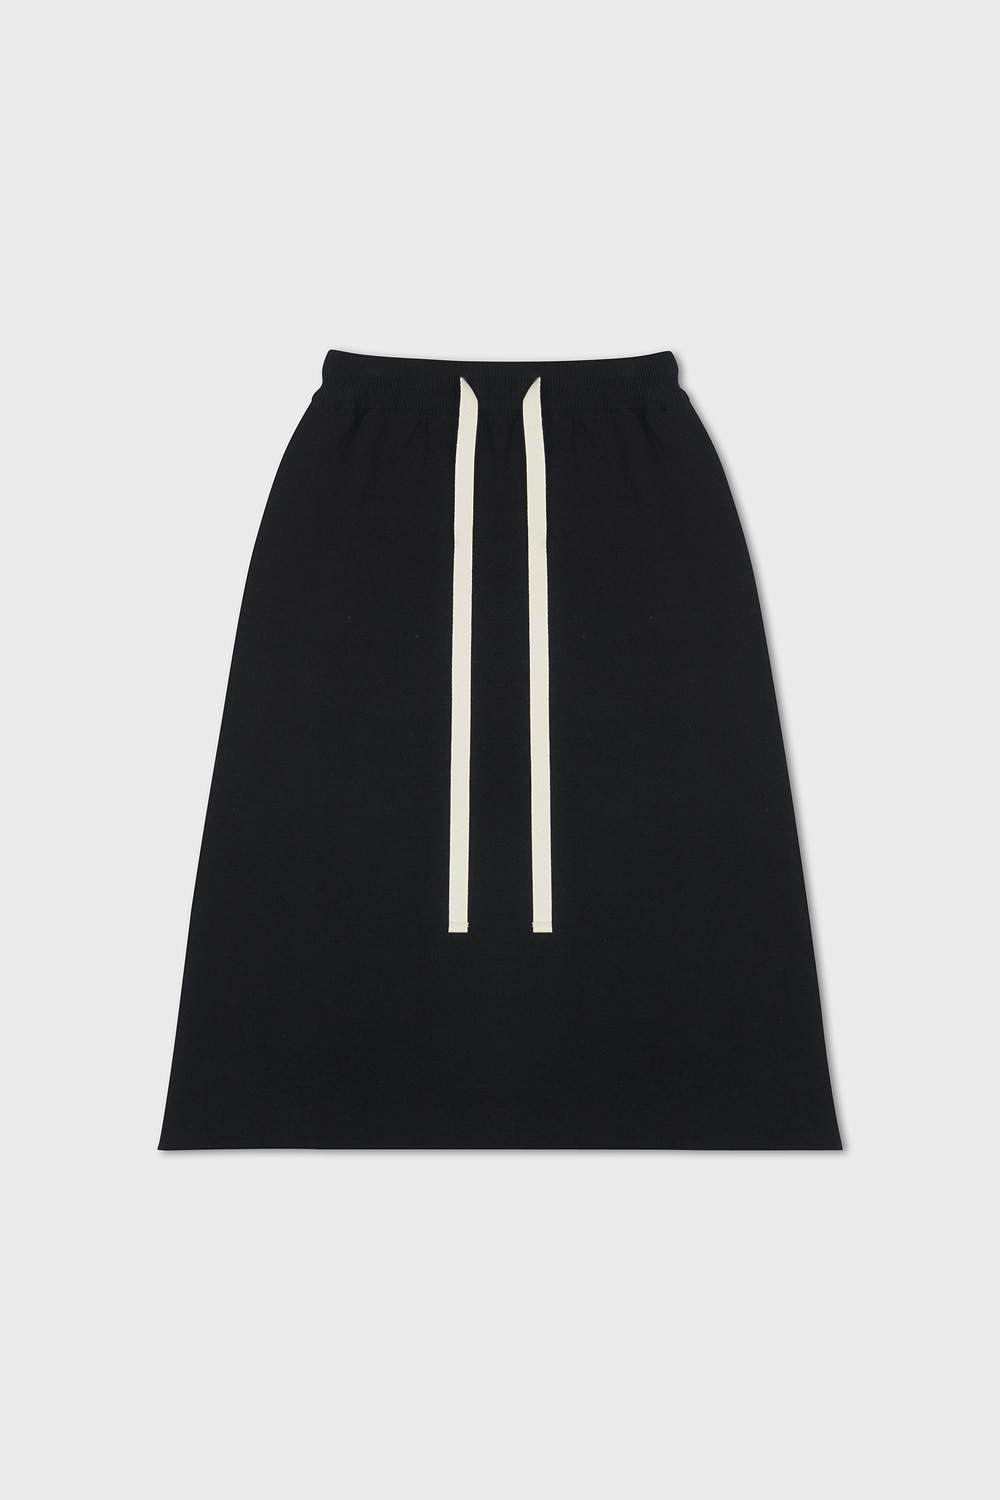 Knitted Sweat Skirt (black)